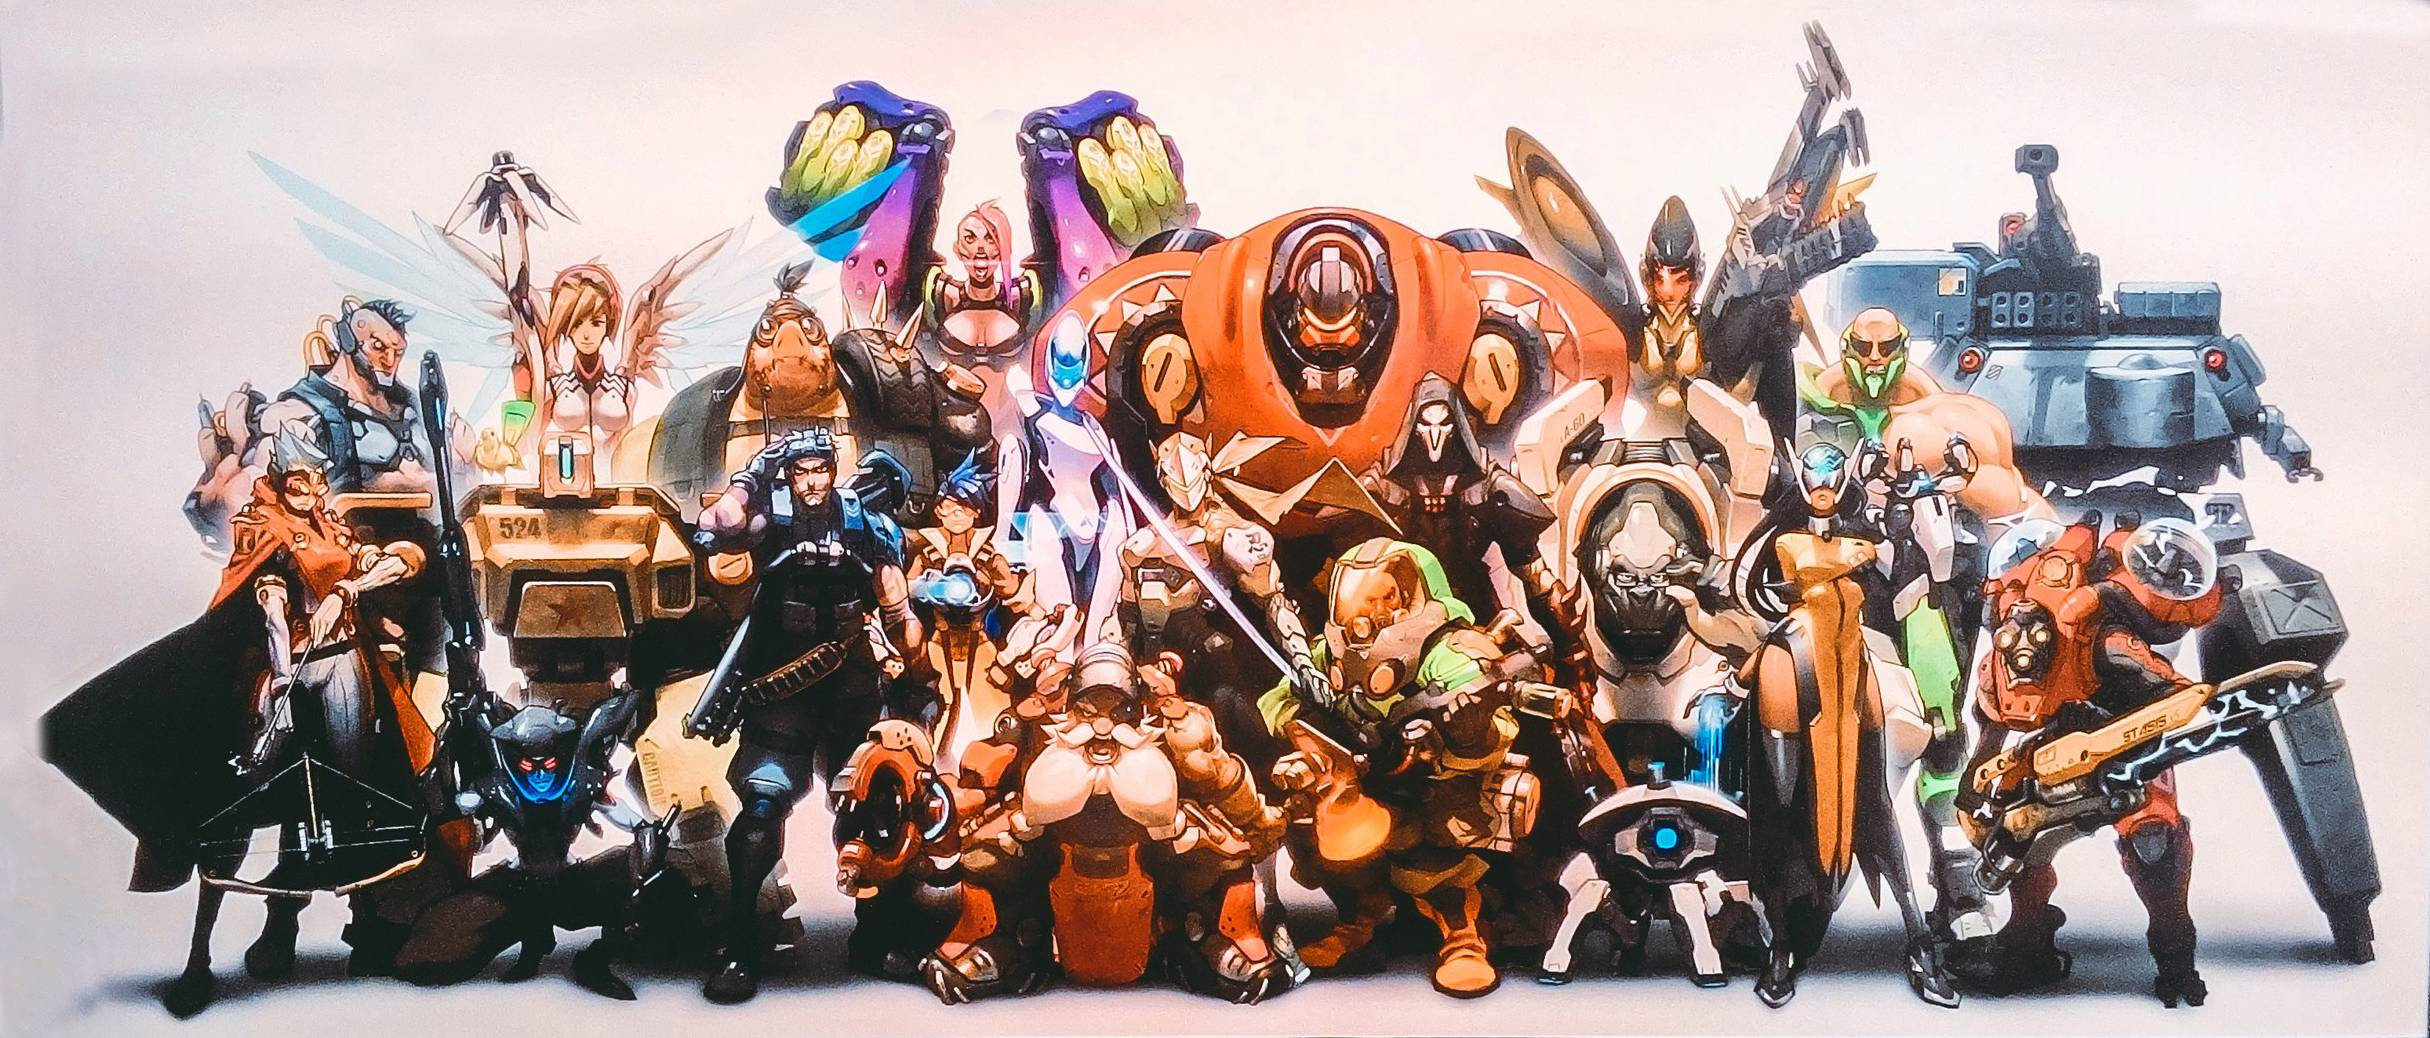 newest overwatch characters